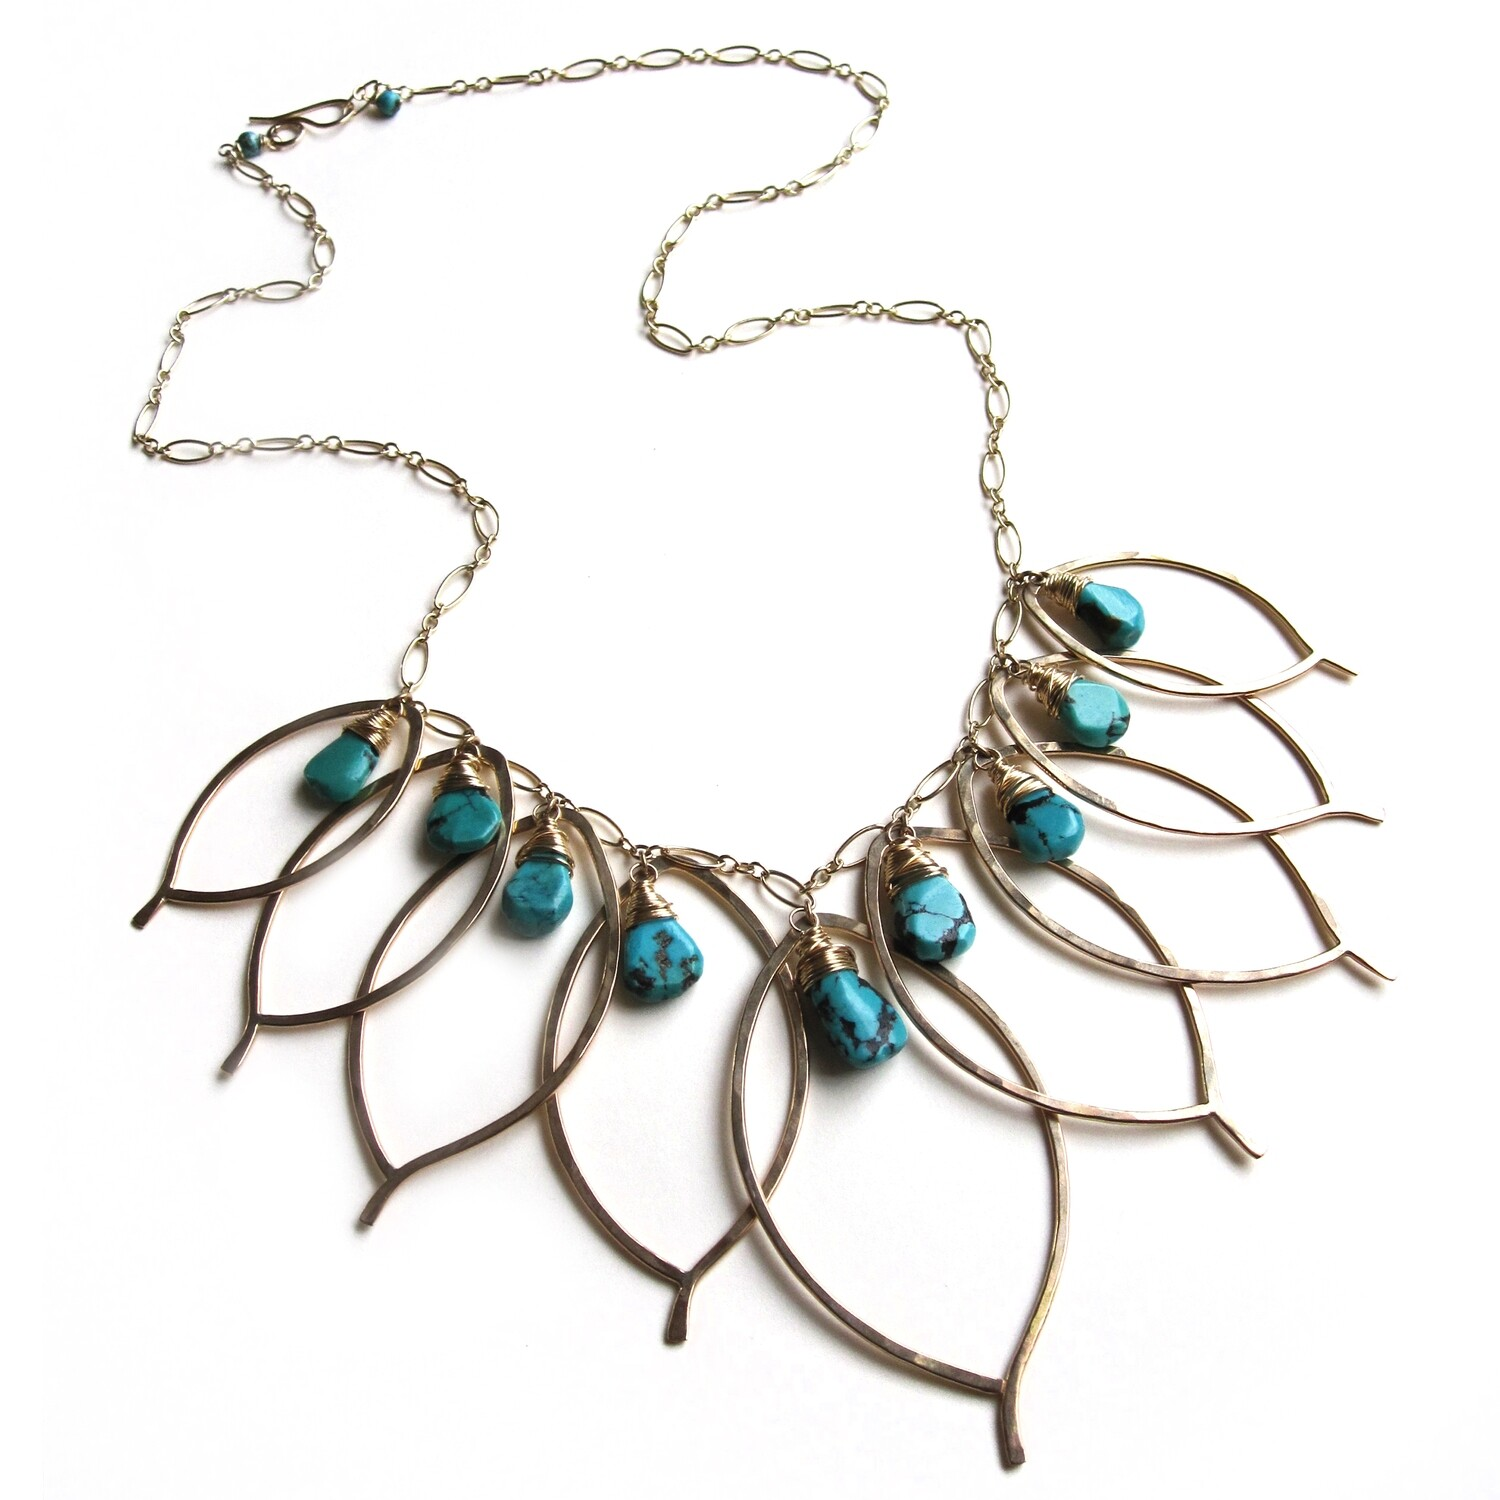 Leaf Cluster Necklace with Stones- 14k Gold Fill